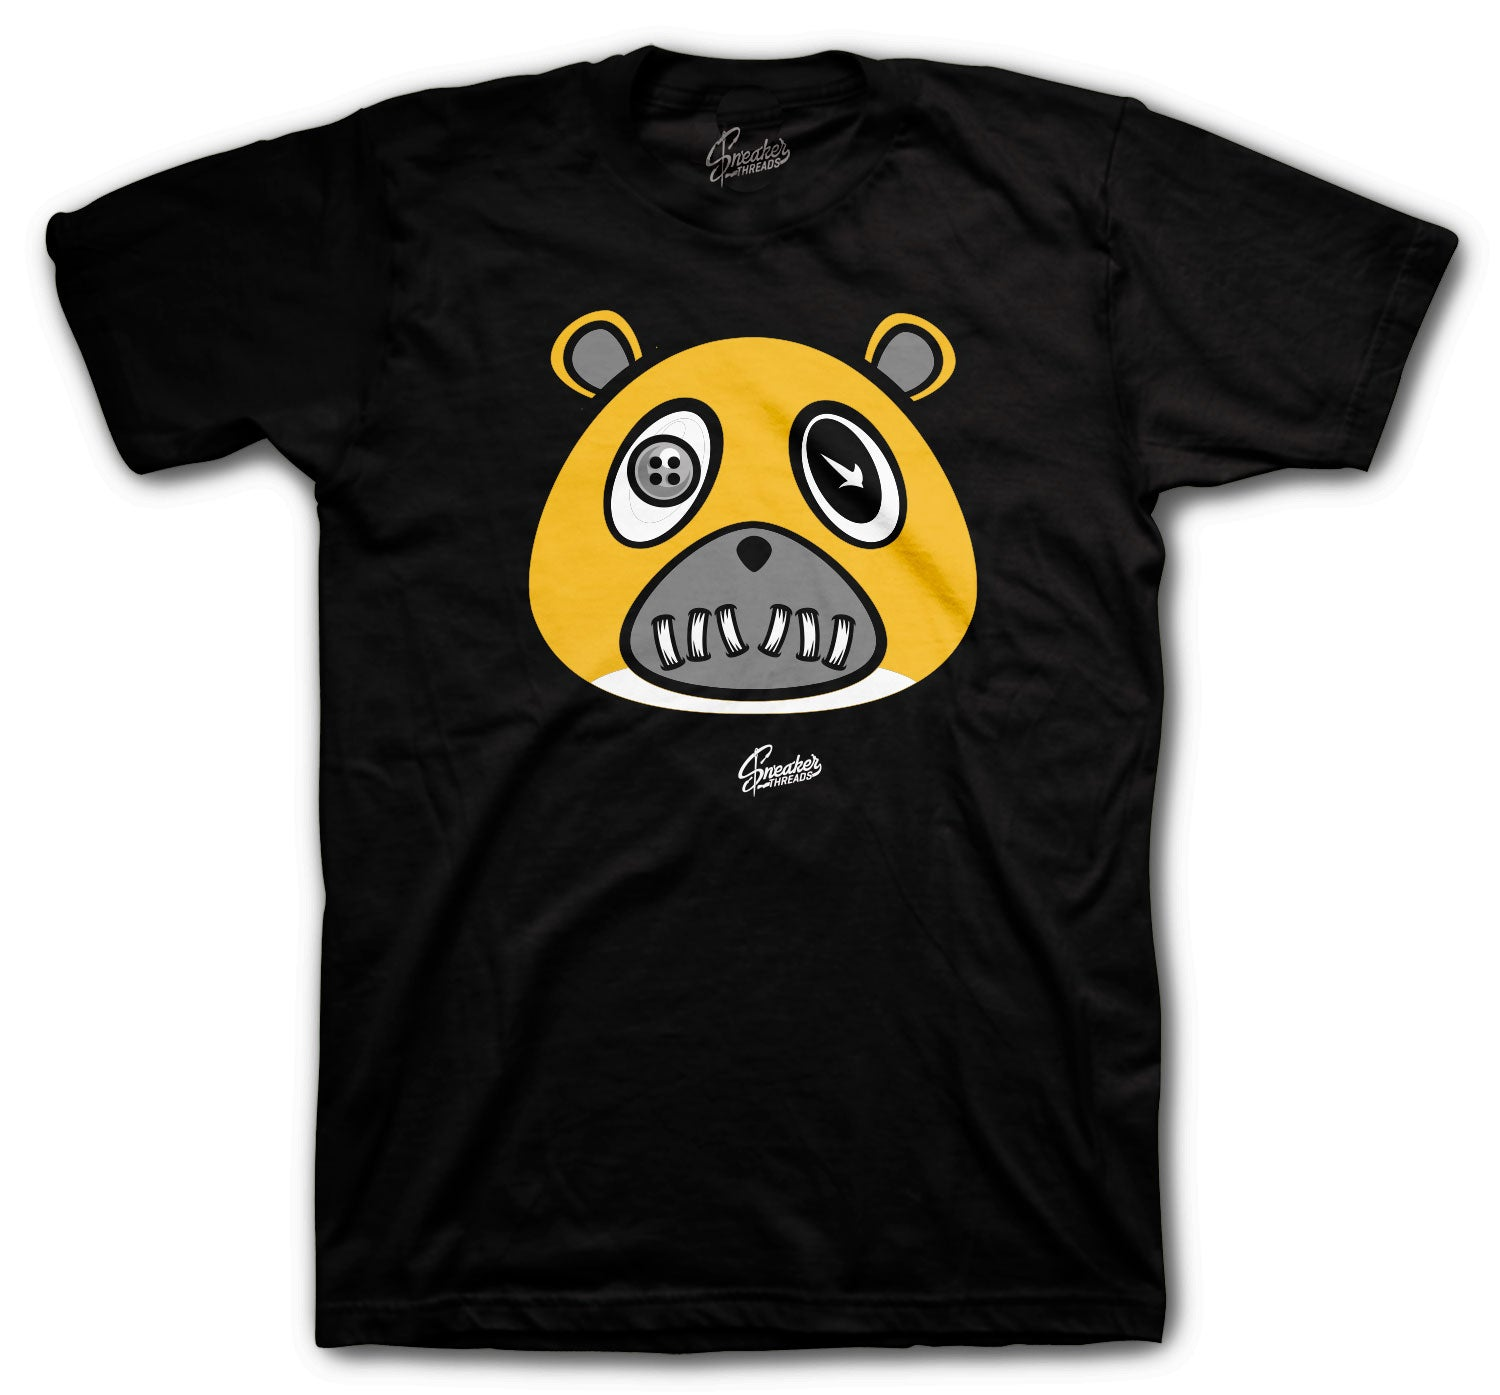 Dunk Hi Maize ST Bear Shirt